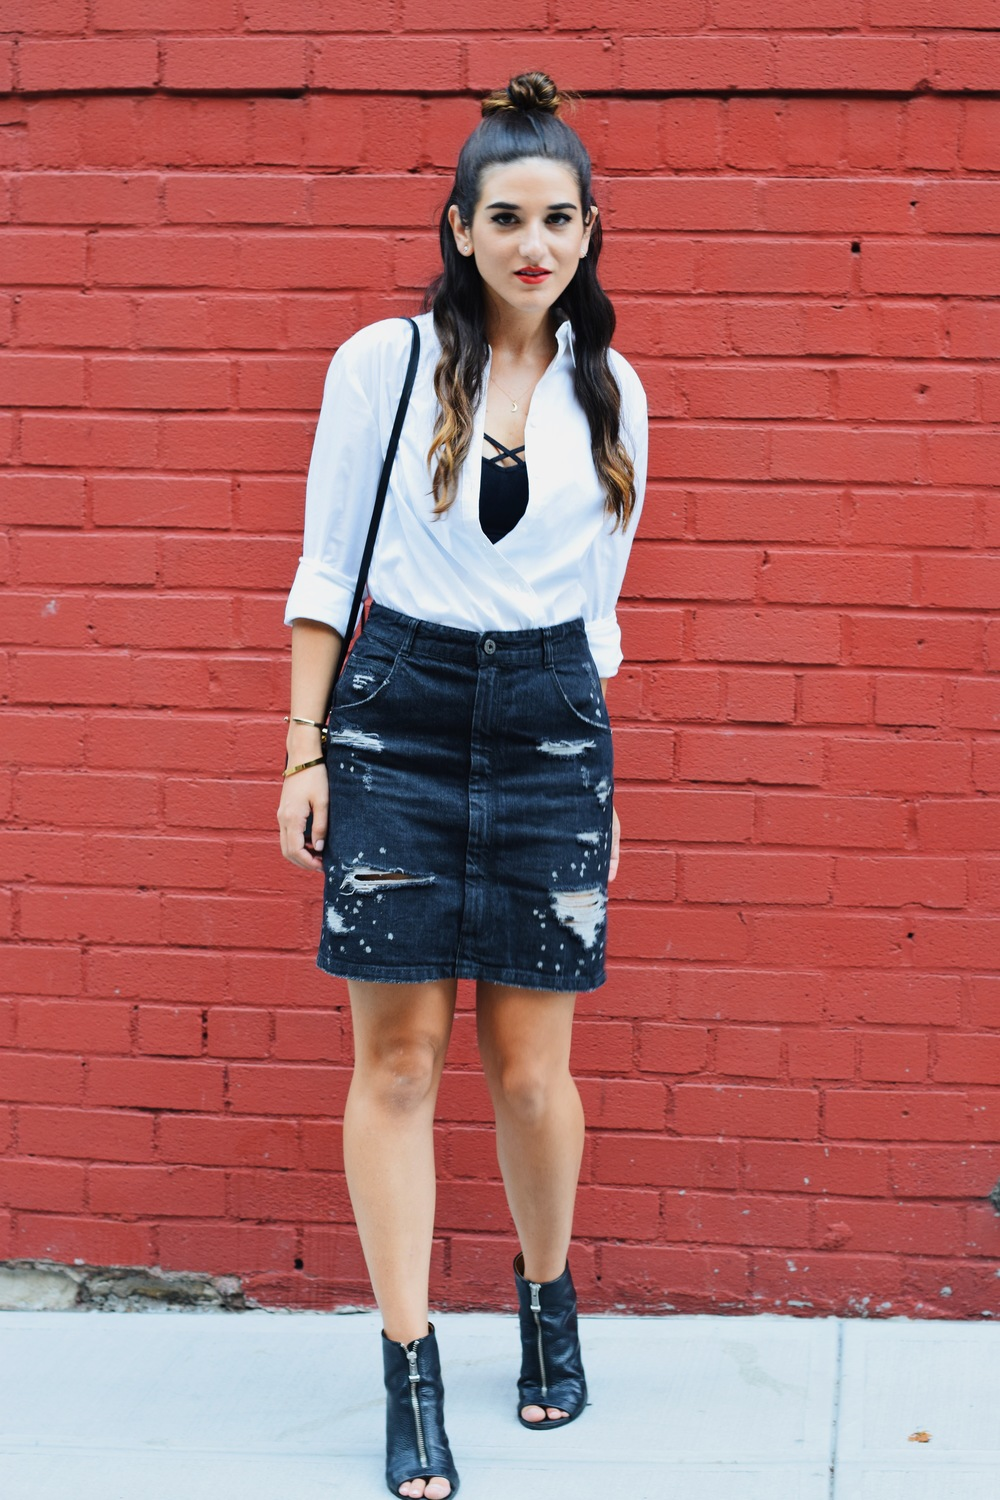 Coco & Marie Moon Necklace Giveaway Louboutins & Love Fashion Blog Esther Santer NYC Street Style Blogger Lifestyle Topknot Bun Ripped Jean Skirt Denim Zara Button Down Zara Black Box Clutch Bag Bralette Nordstrom Booties Girl Outfit Gold Jewelry OOTD.JPG